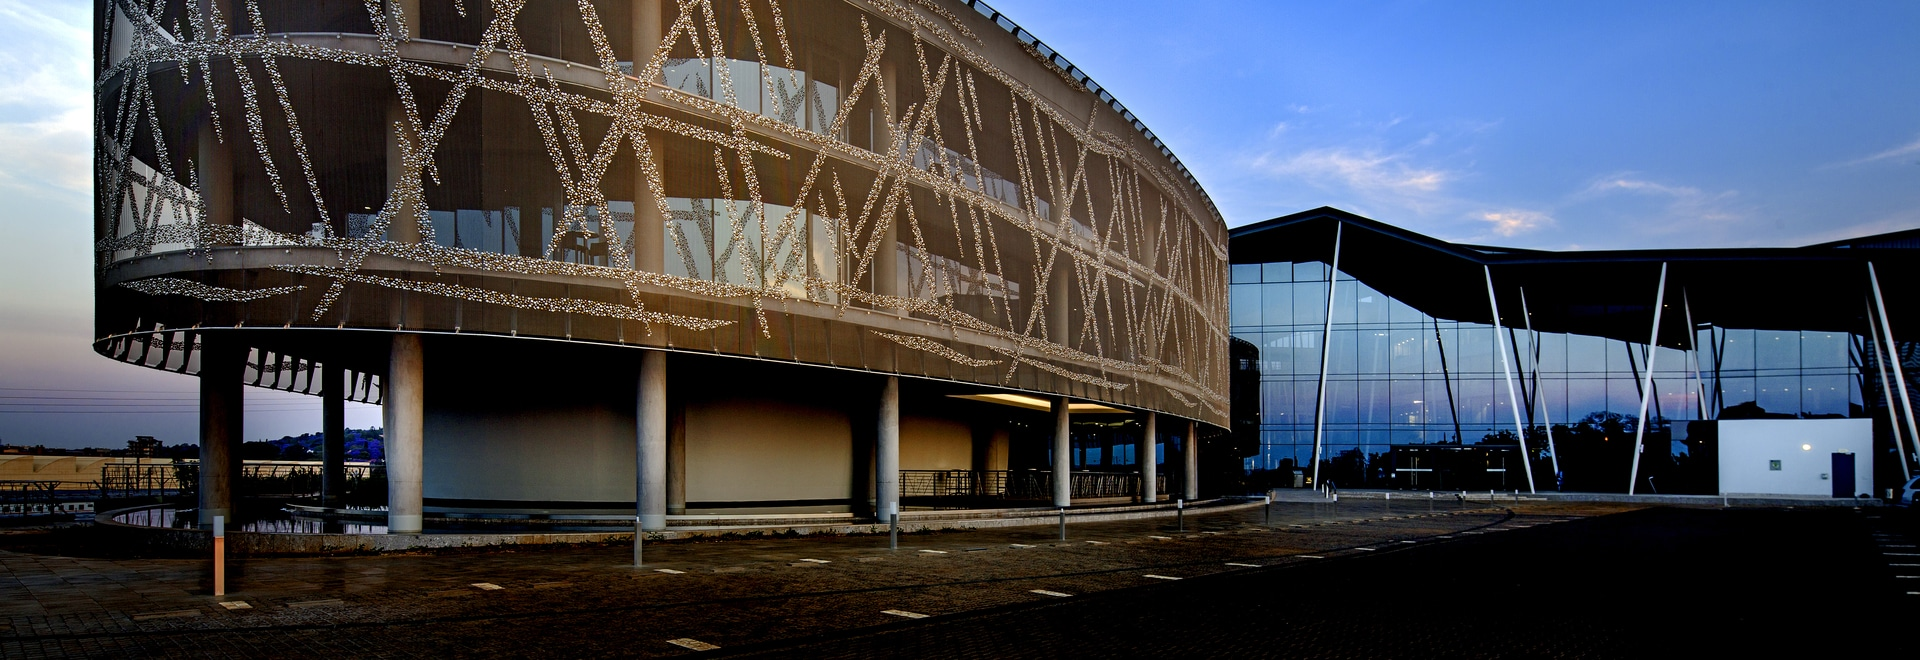 Metal mesh as an expressive shell for the national statistics authority in South Africa